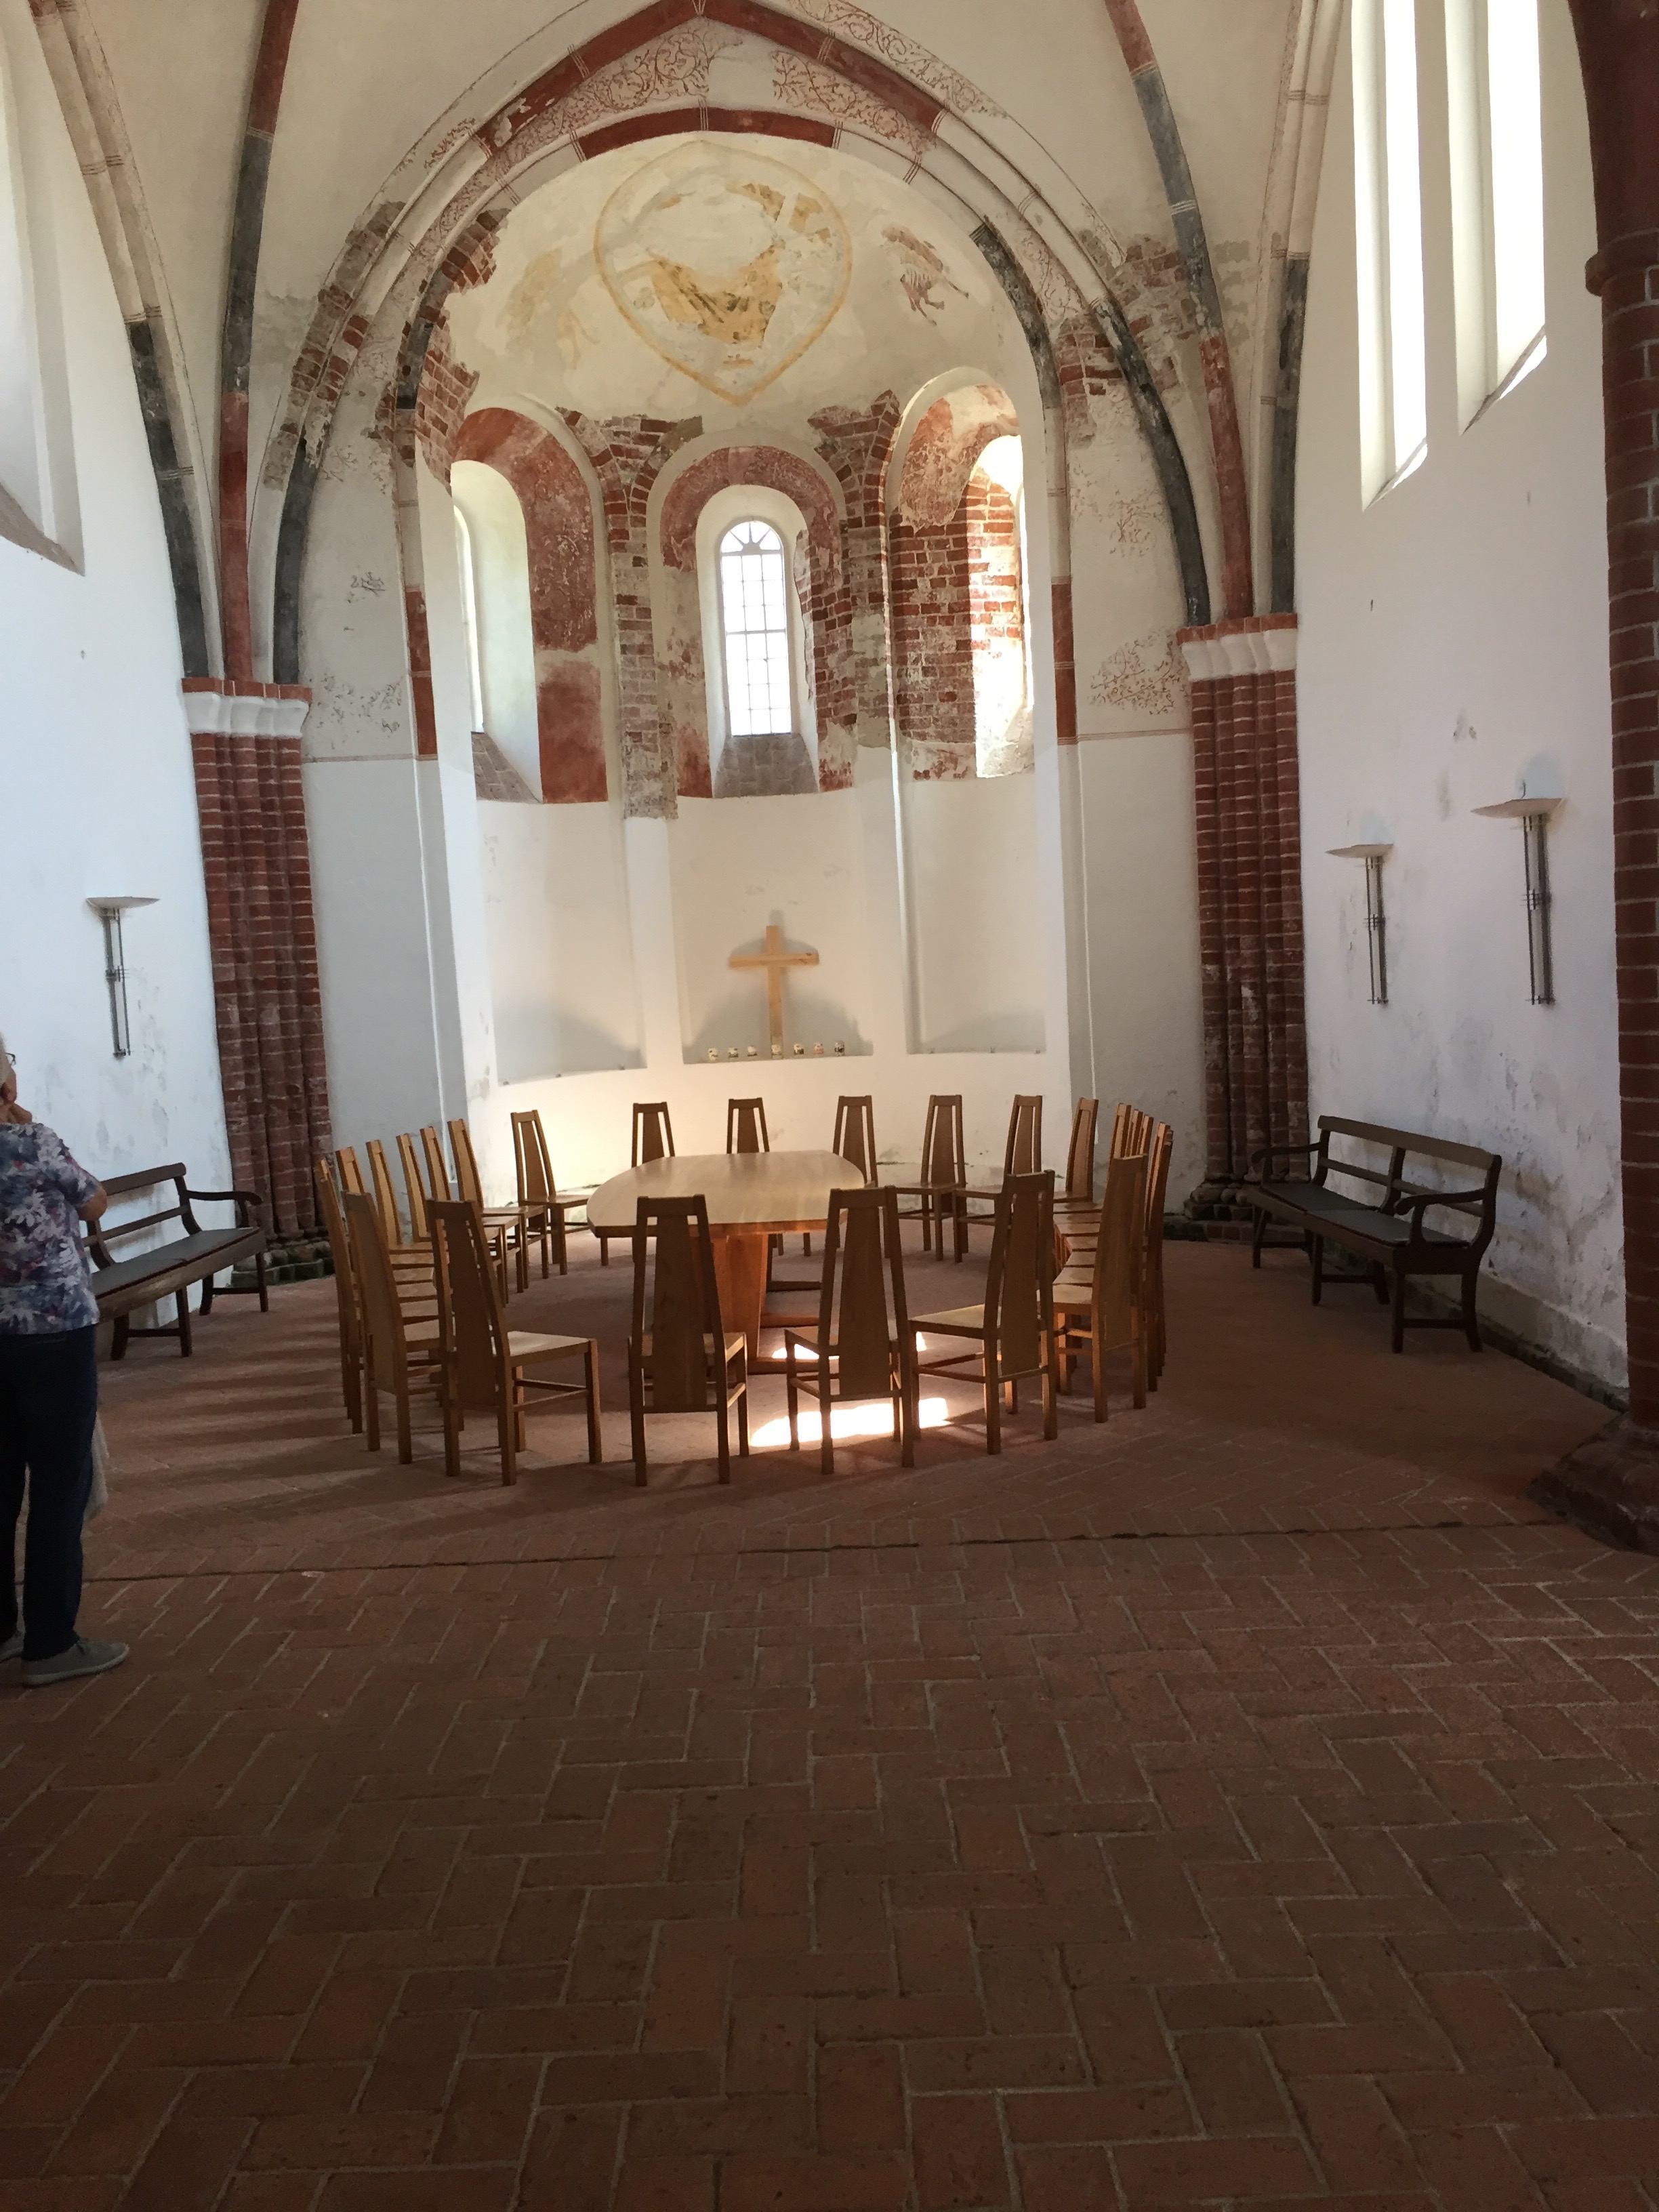 Today, the congregation in Pilsum is quite small, so services are held around this altar with congregants seated in a circle.